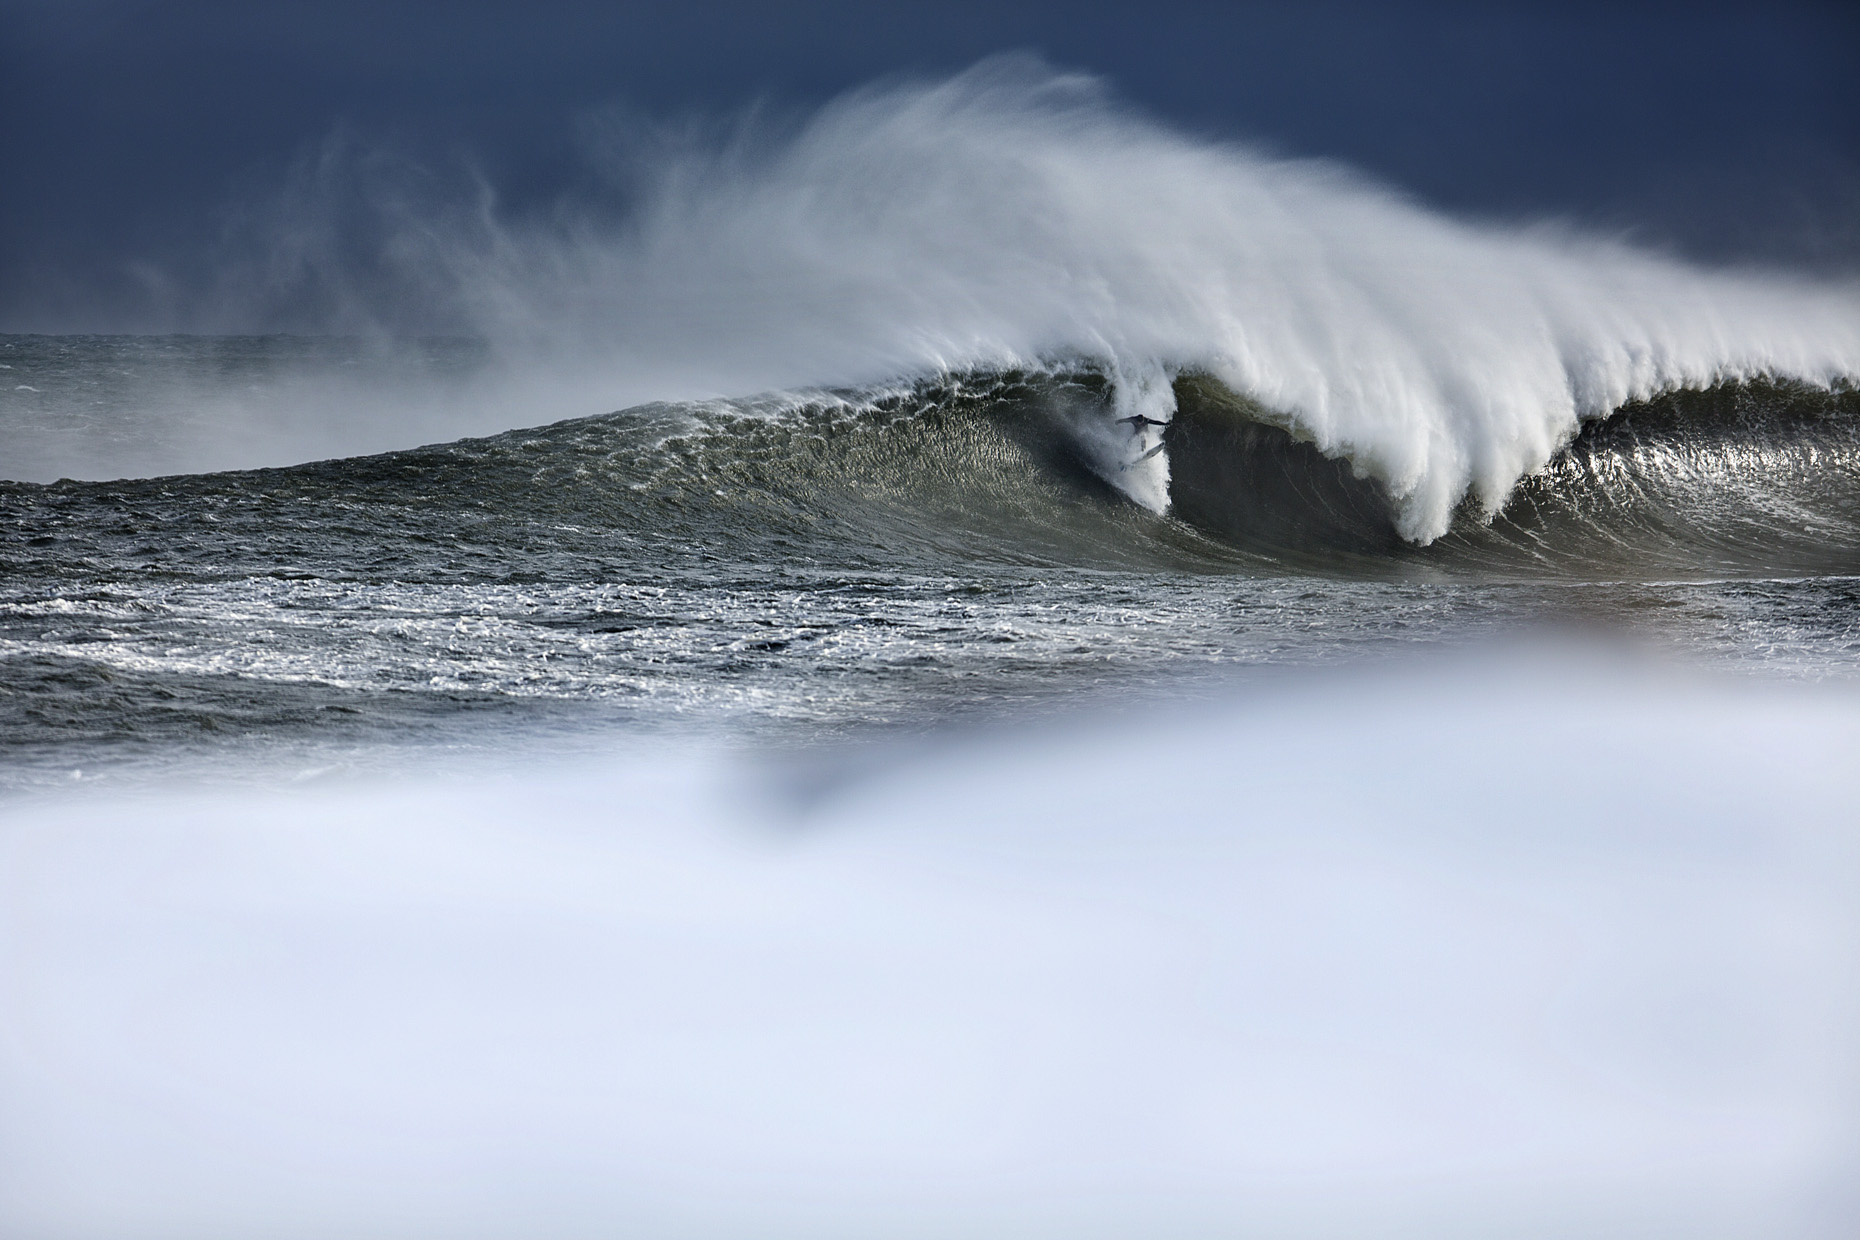 Winter Surfing in Maine by Boston based commercial sports photographer Brian Nevins